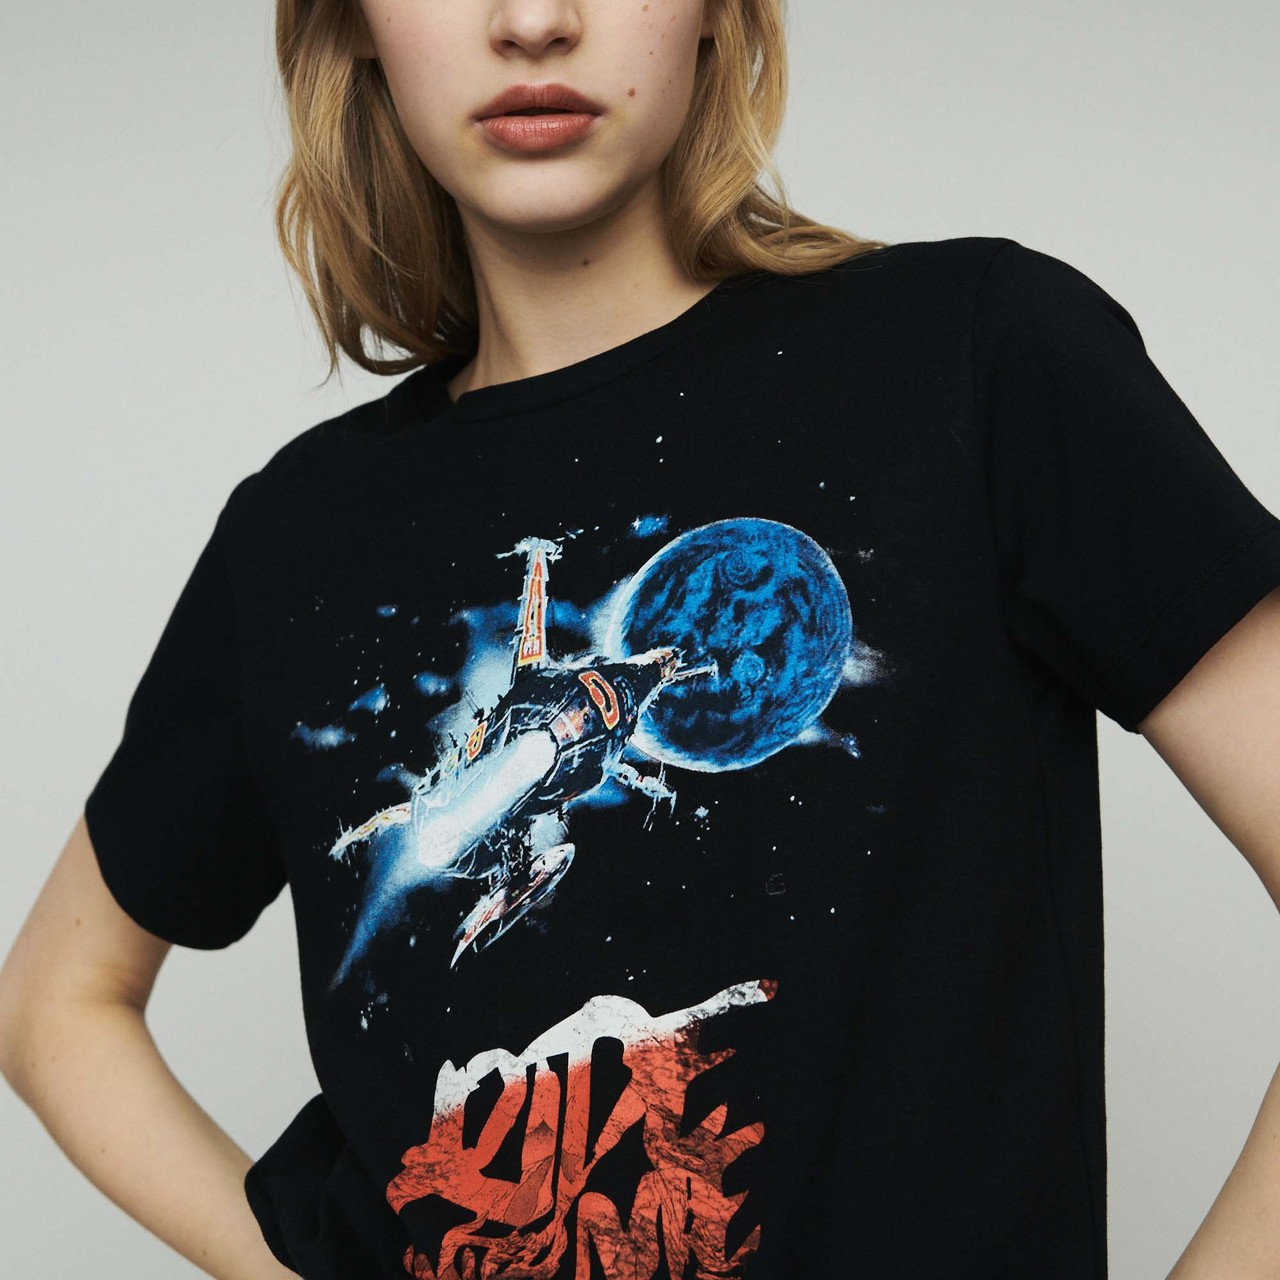 Ride With Me Printed T Shirt - Black